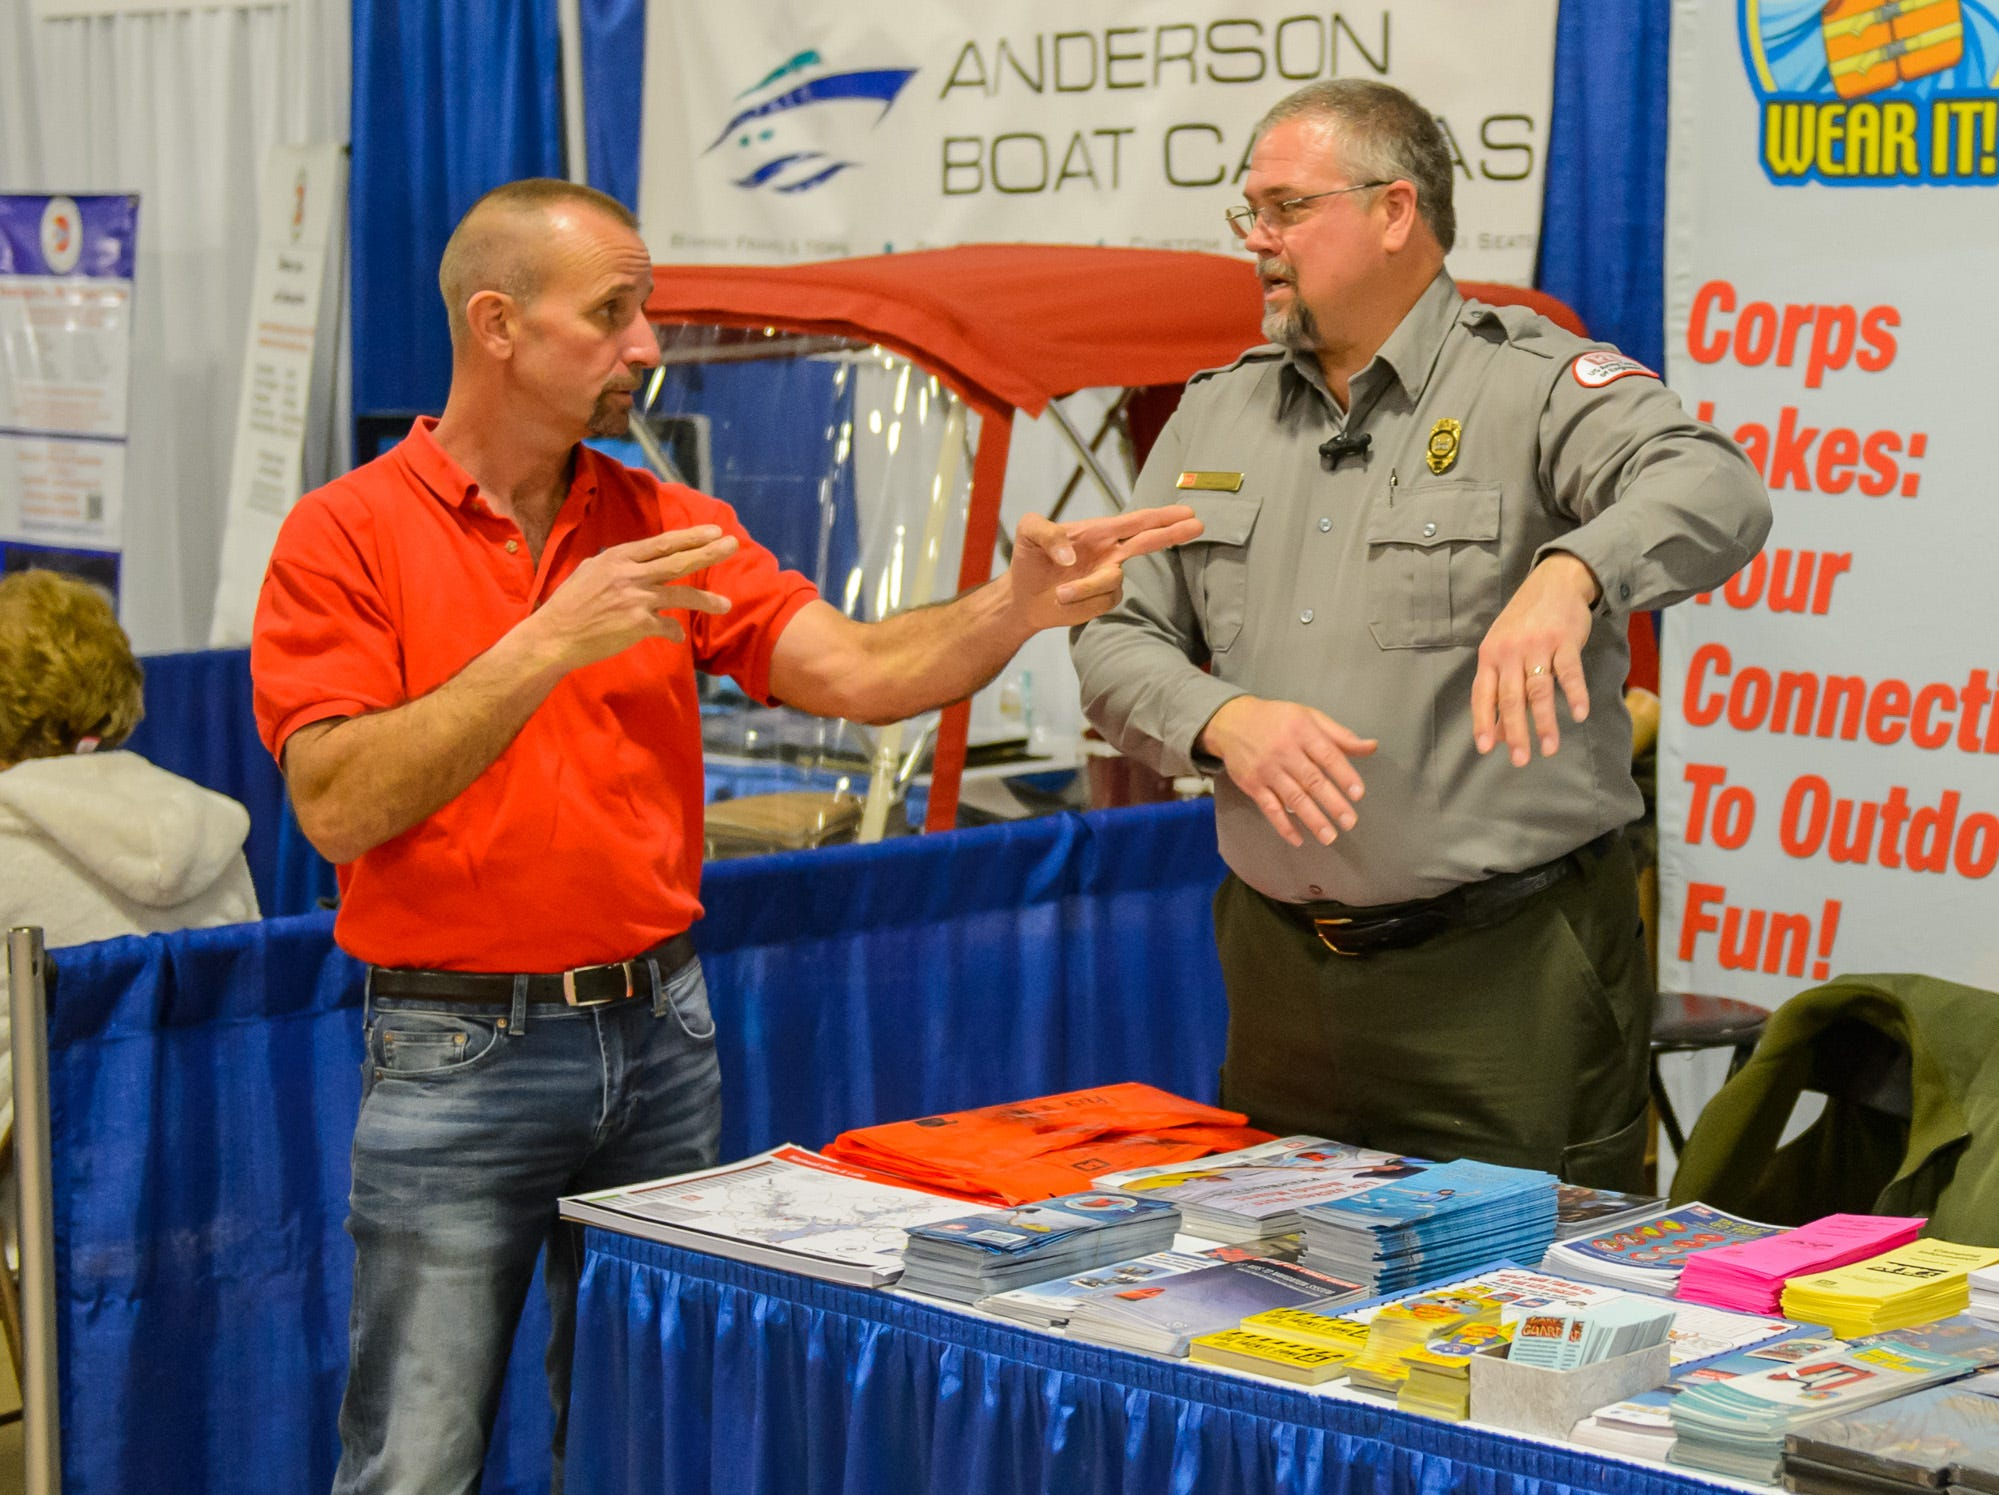 2019 Upstate SC Boat Show at the Greenville Convention Center on Saturday, January 26, 2019.